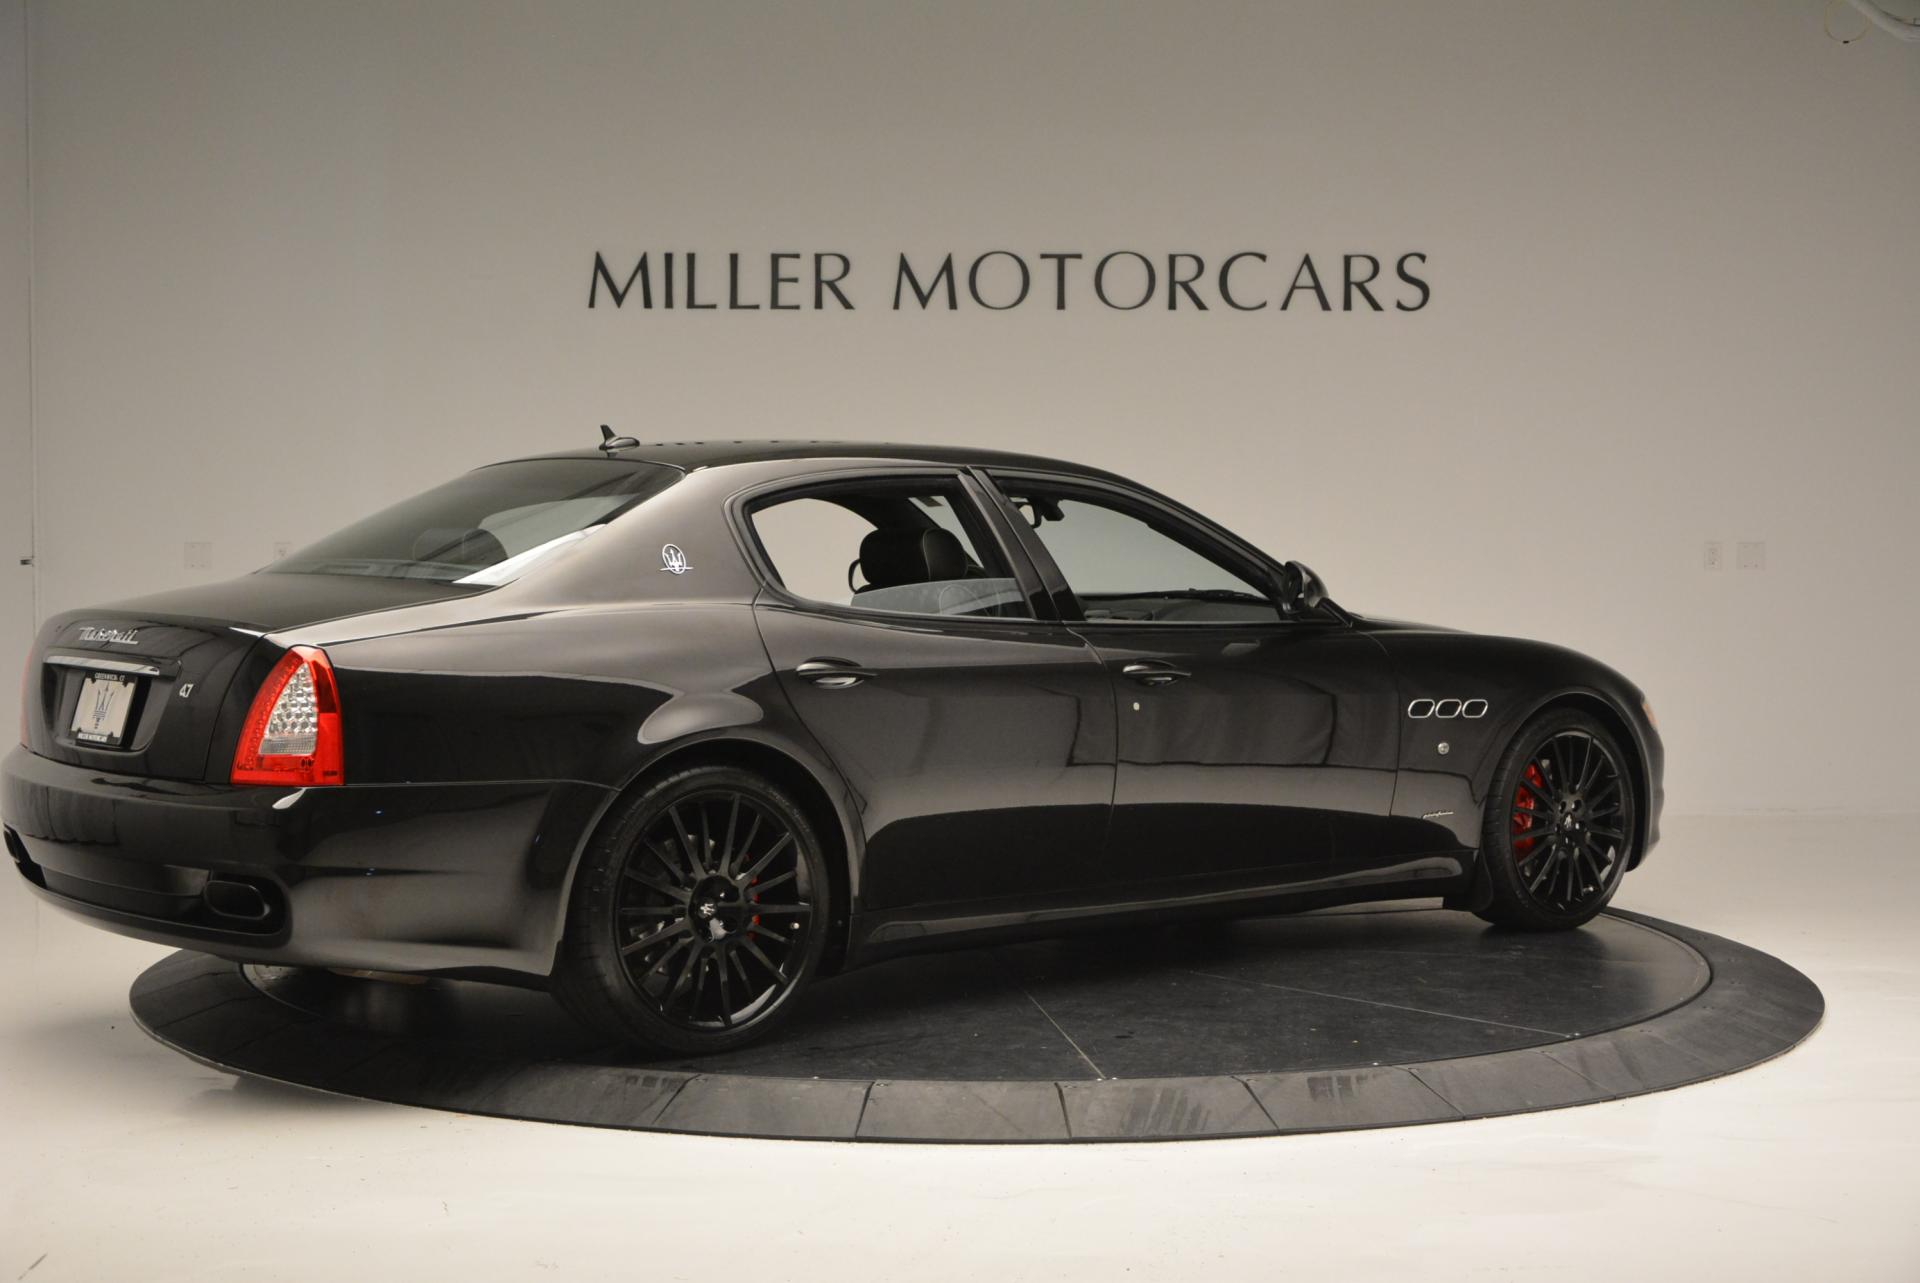 Used 2011 Maserati Quattroporte Sport GT S For Sale In Greenwich, CT. Alfa Romeo of Greenwich, 7080 531_p8